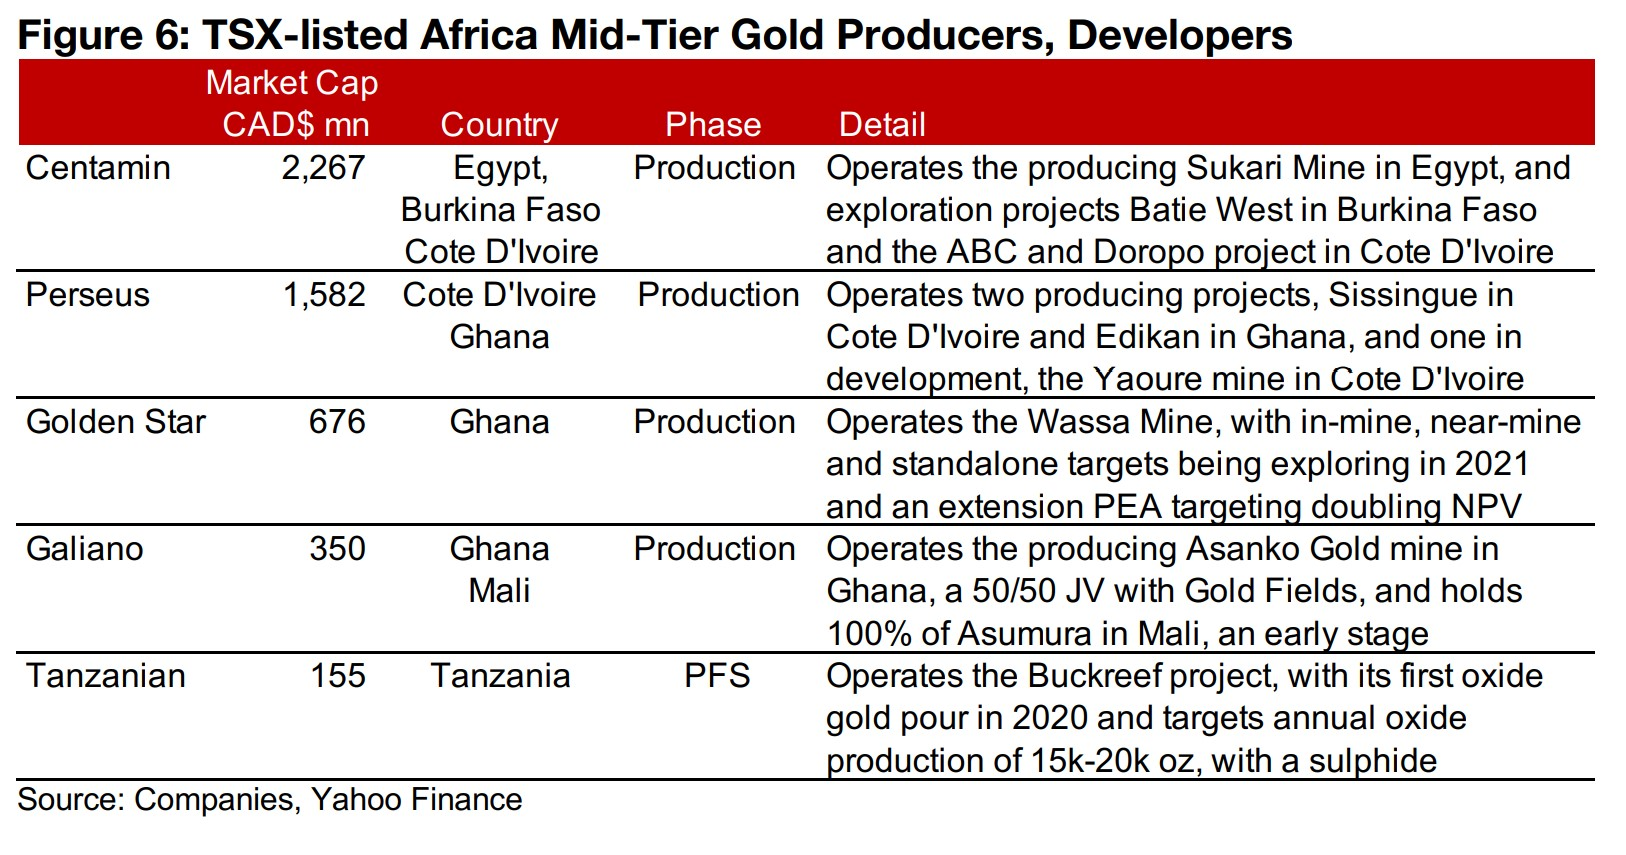 2) TSX-listed Africa Gold Producers, Developers